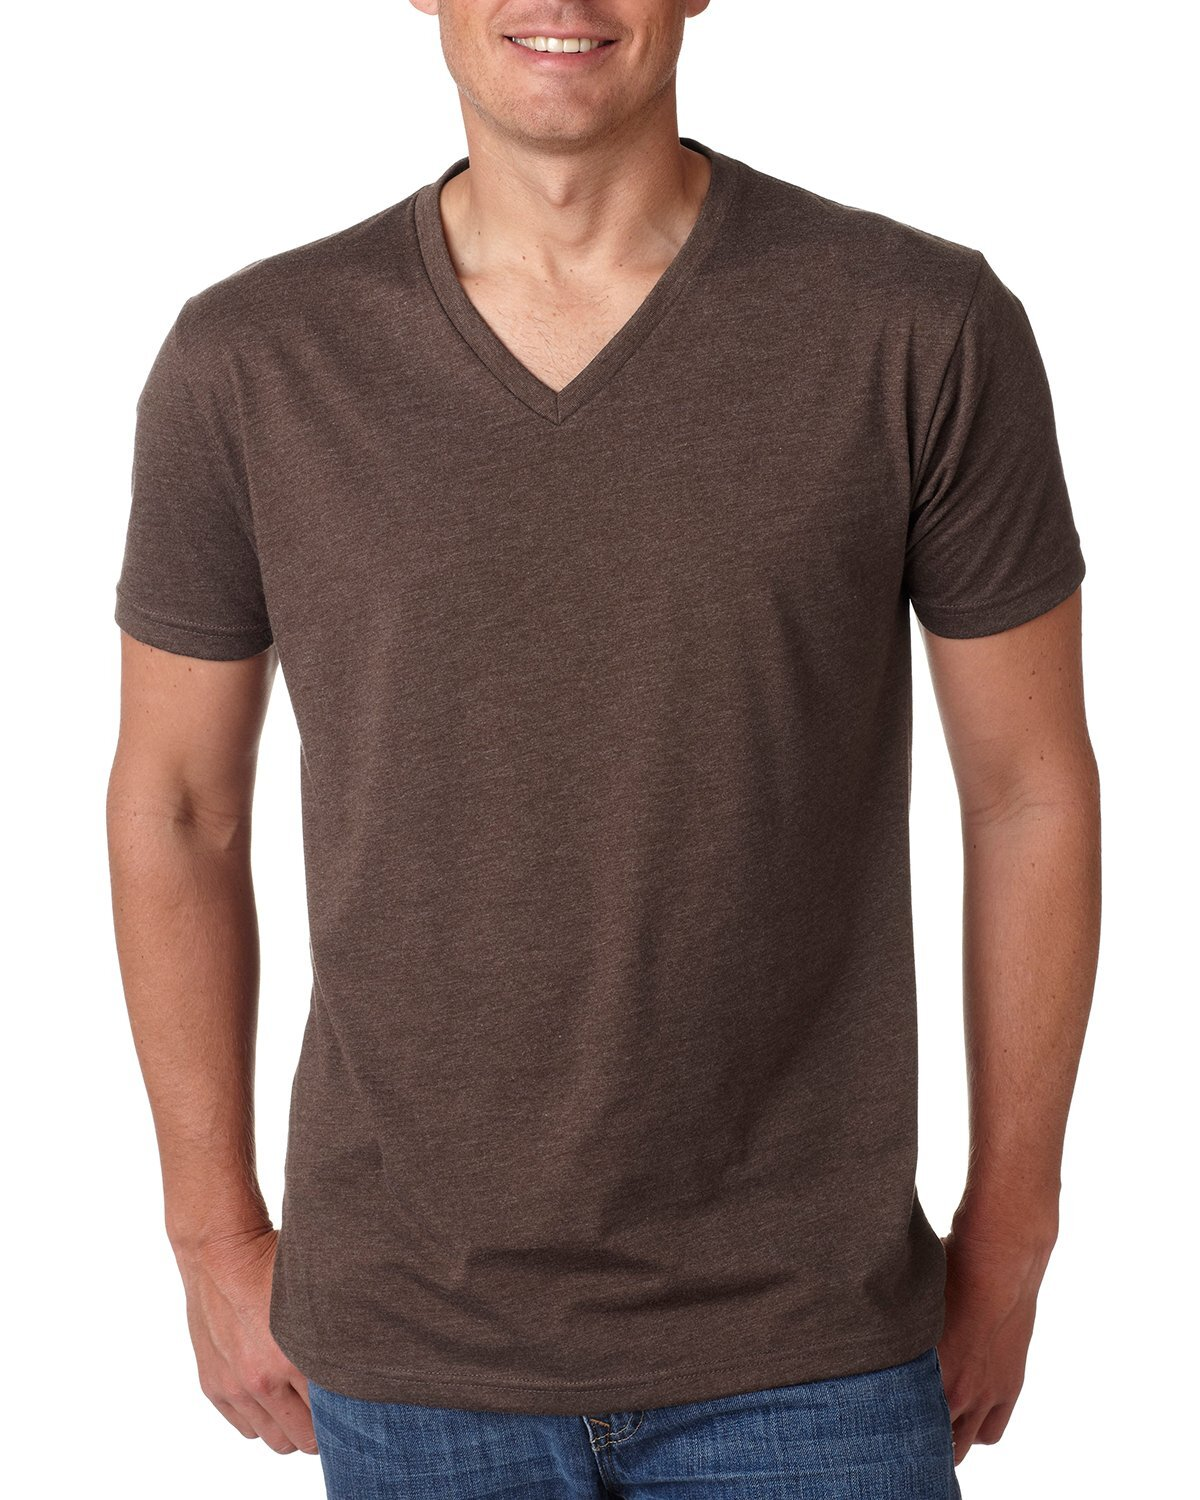 Next Level® Premium CVC Men's V Neck Tee